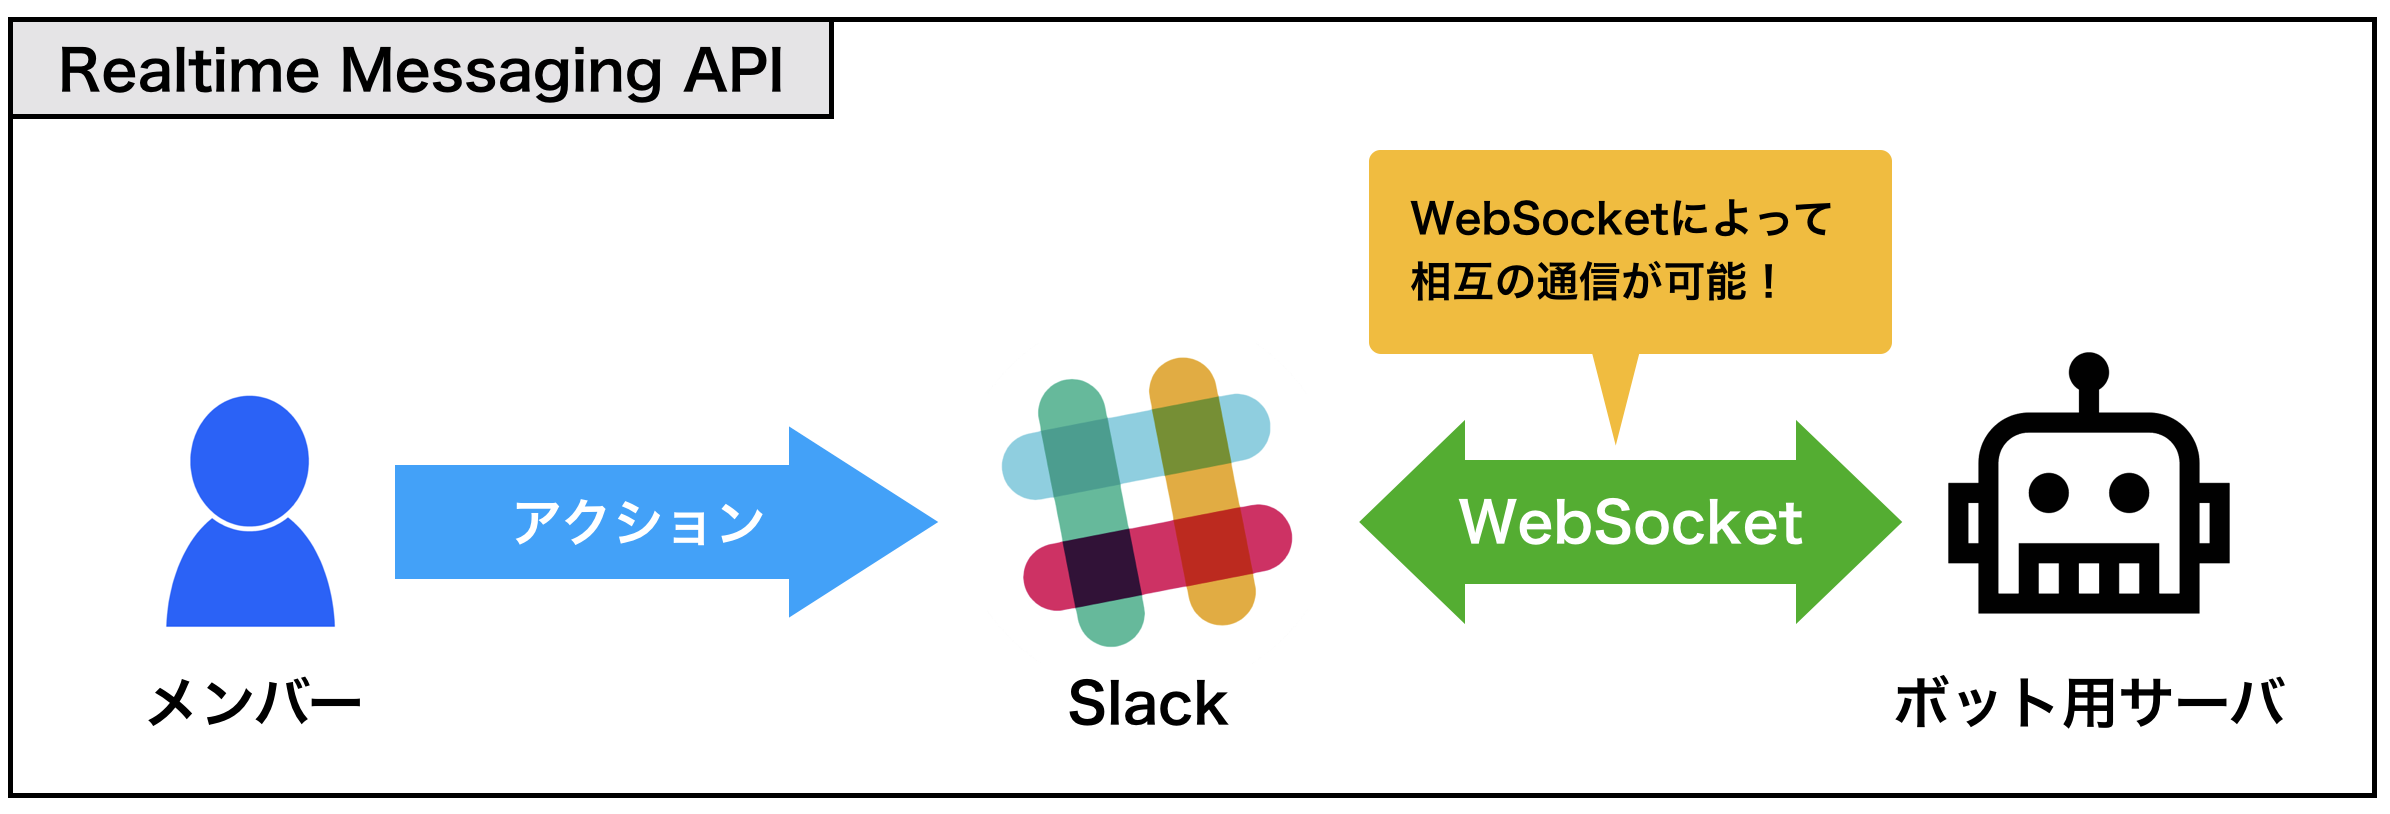 websocket.png